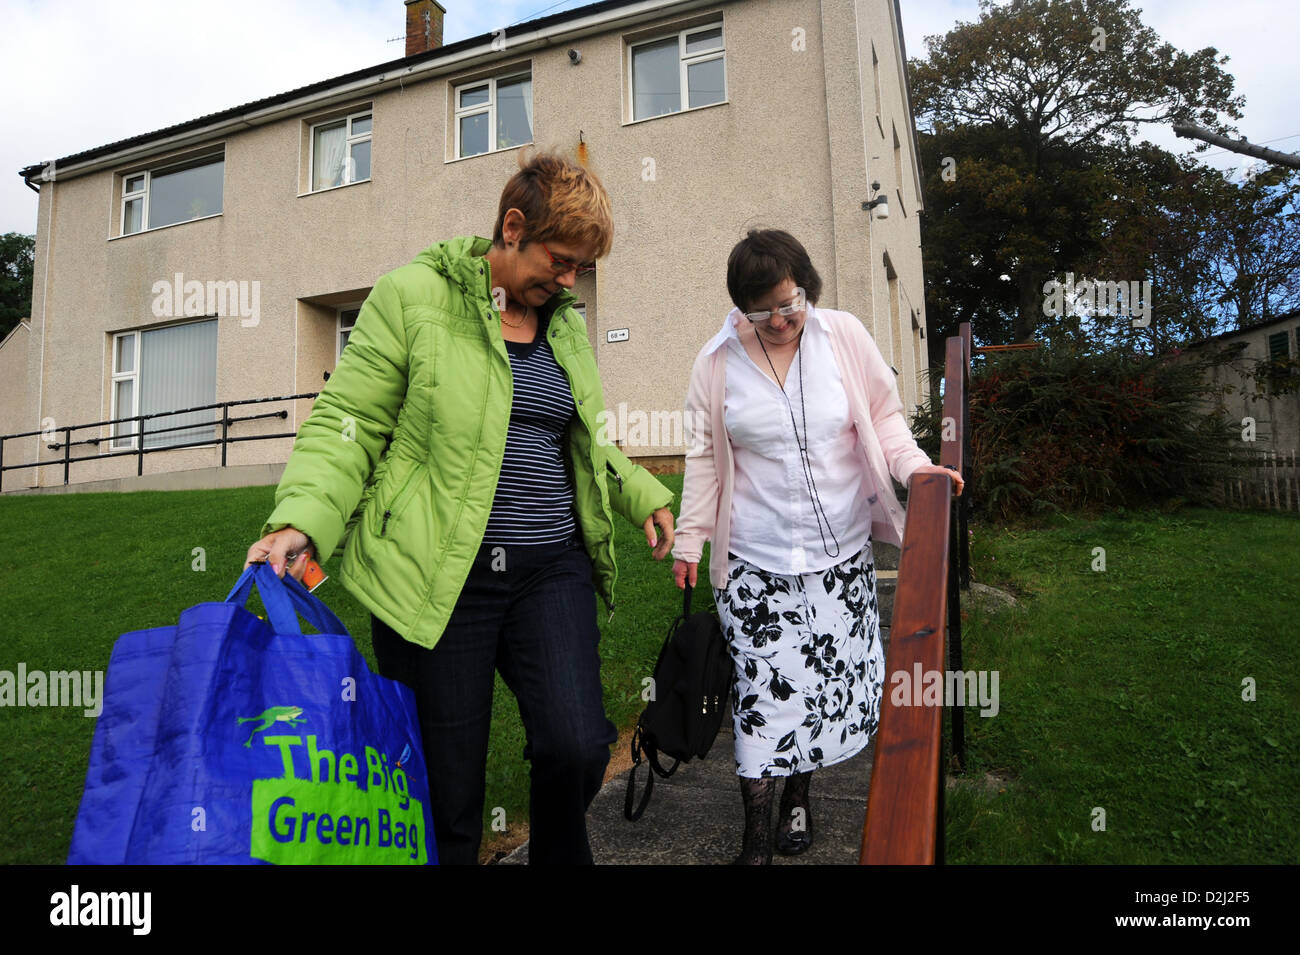 A Young disabled women lives independently with help from her carer, she goes shopping. - Stock Image